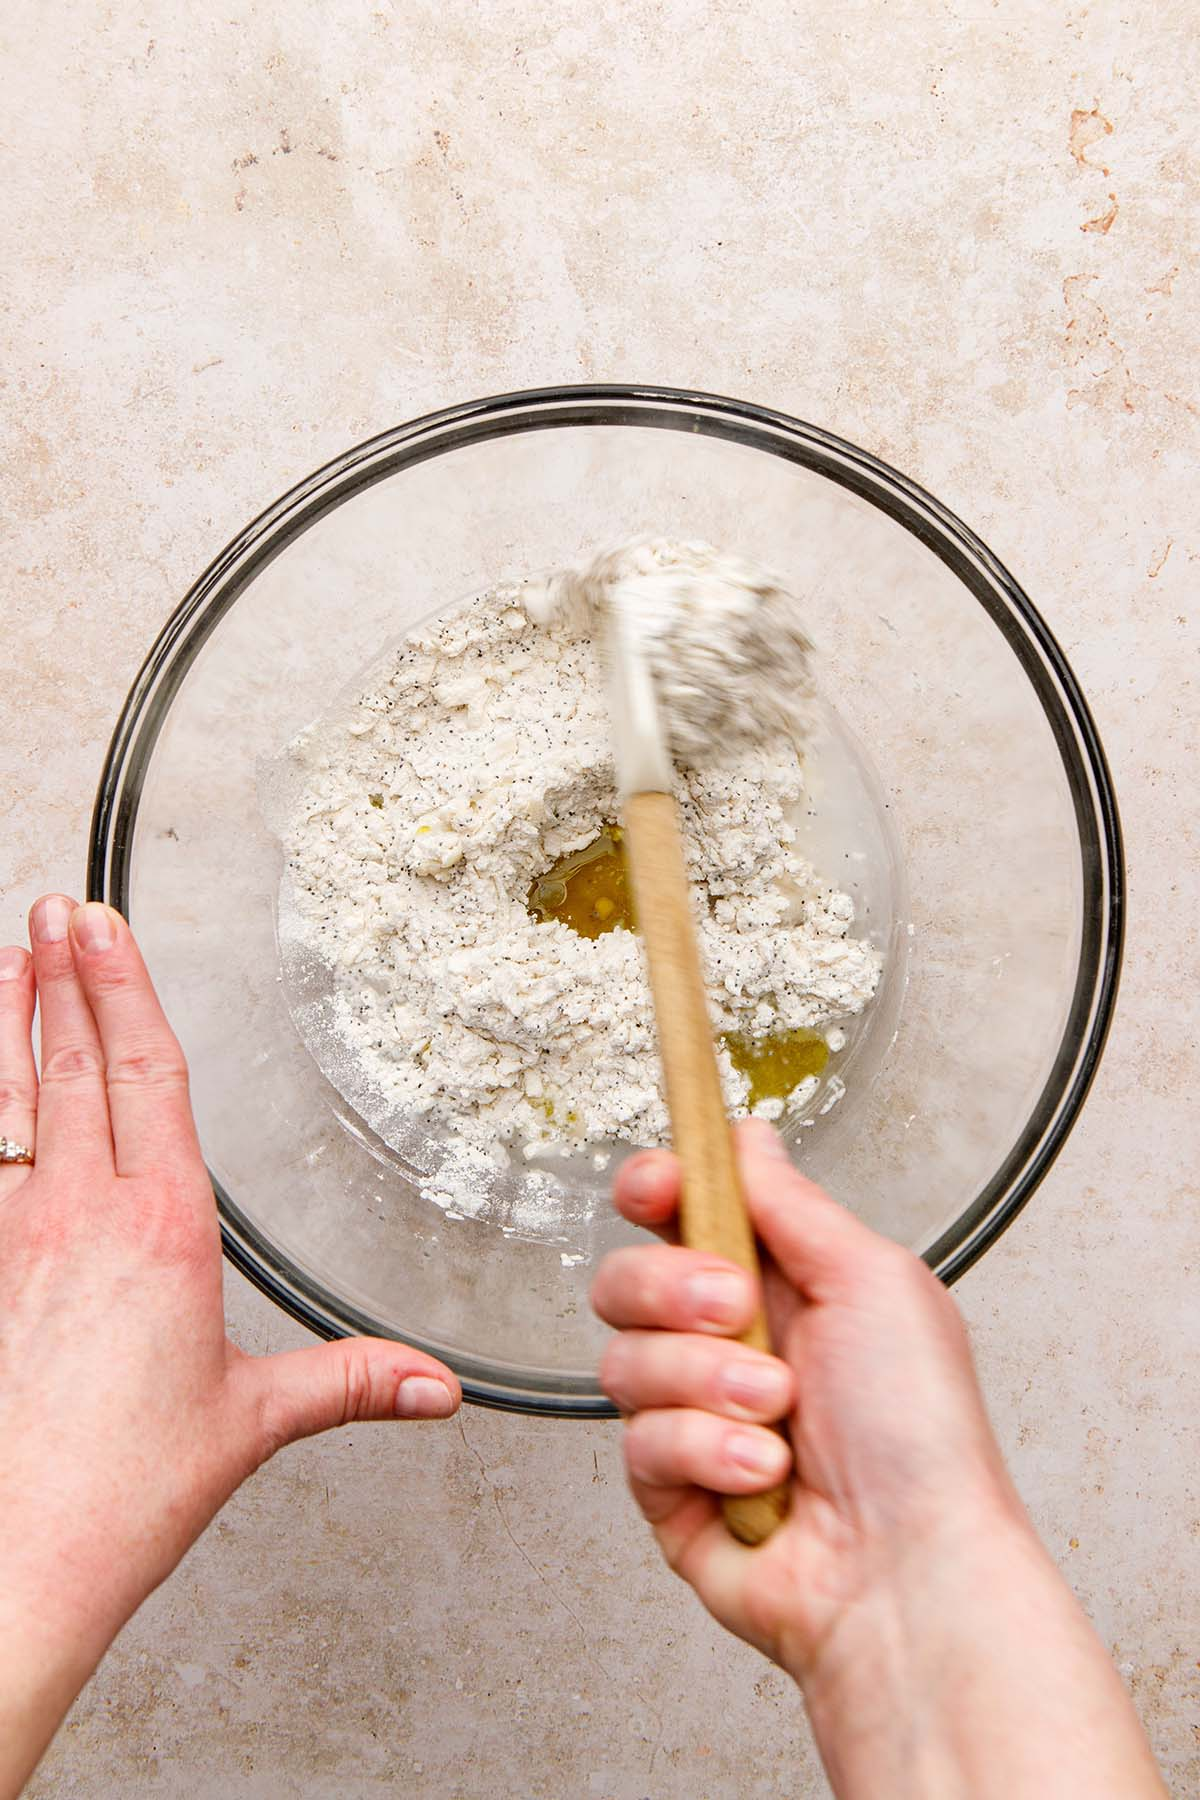 A hand mixing dough with a rubber spatula.